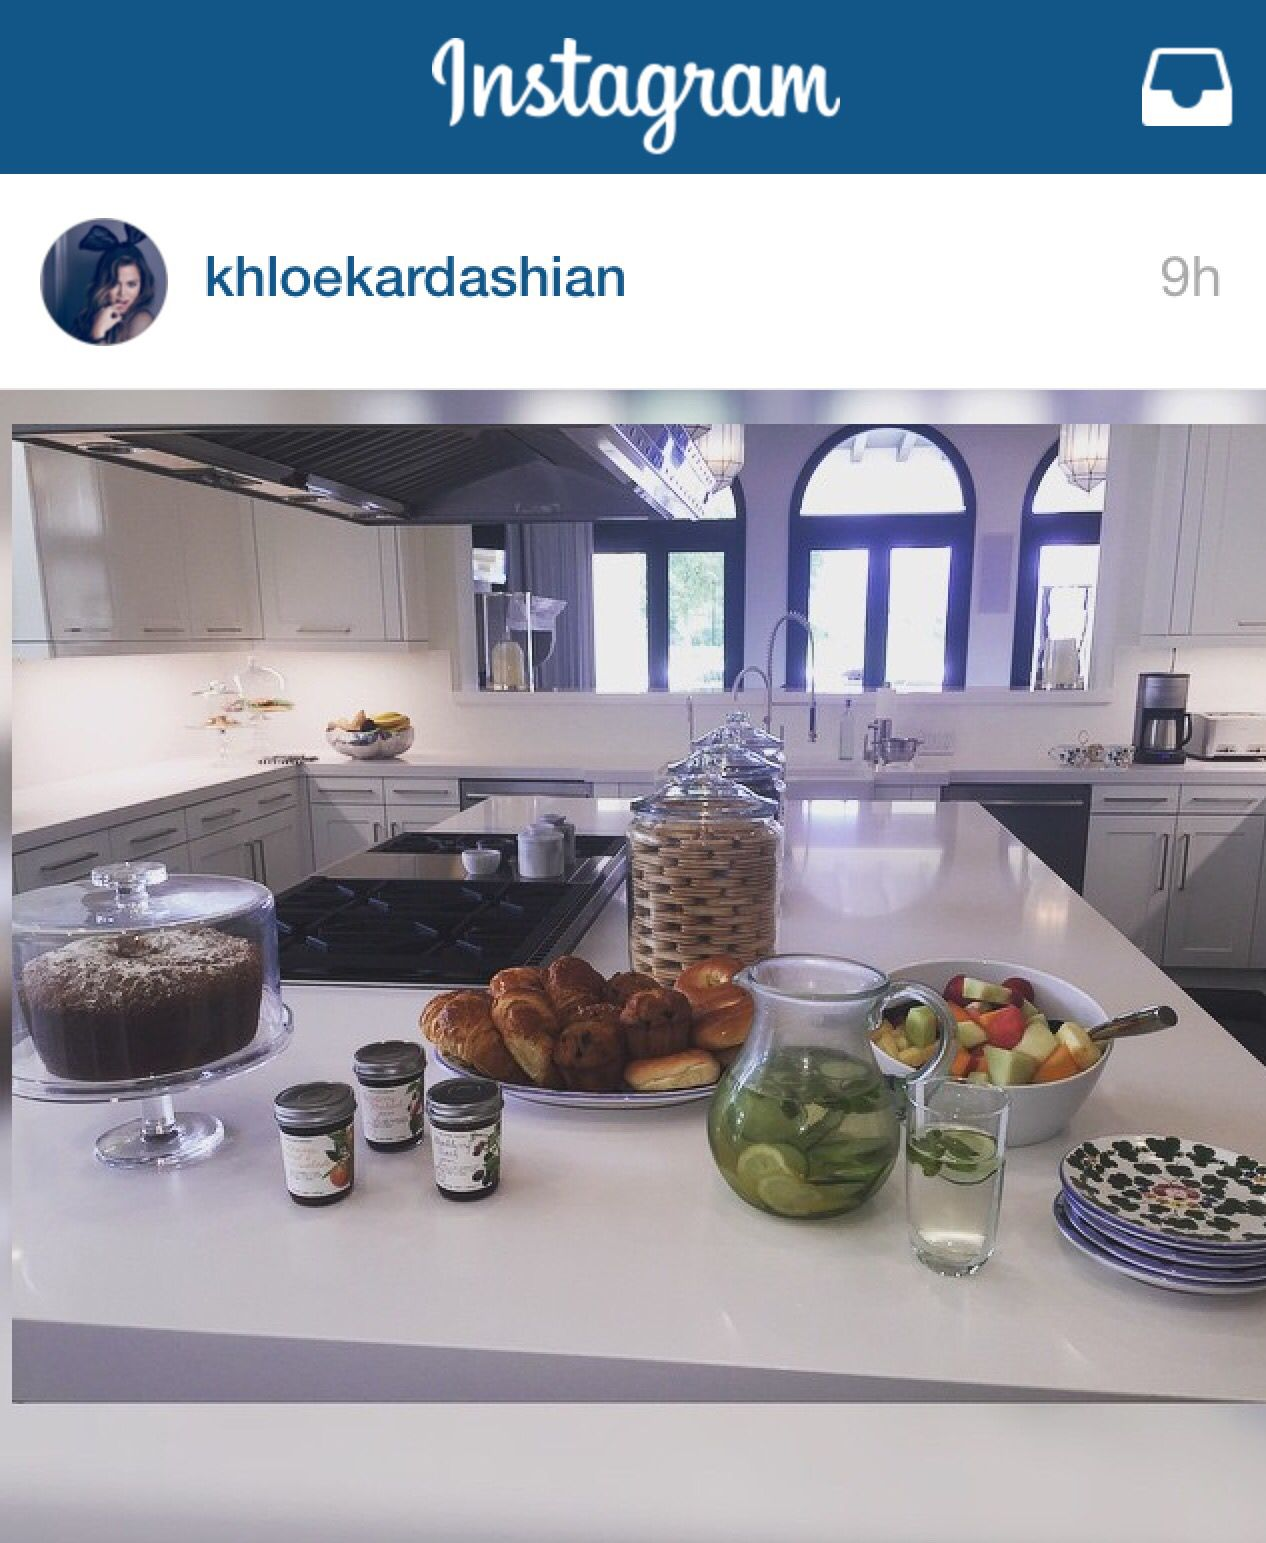 Home Decor Kitchen Ideas: Khloe Kardashian's Kitchen #minimalist #inspiration